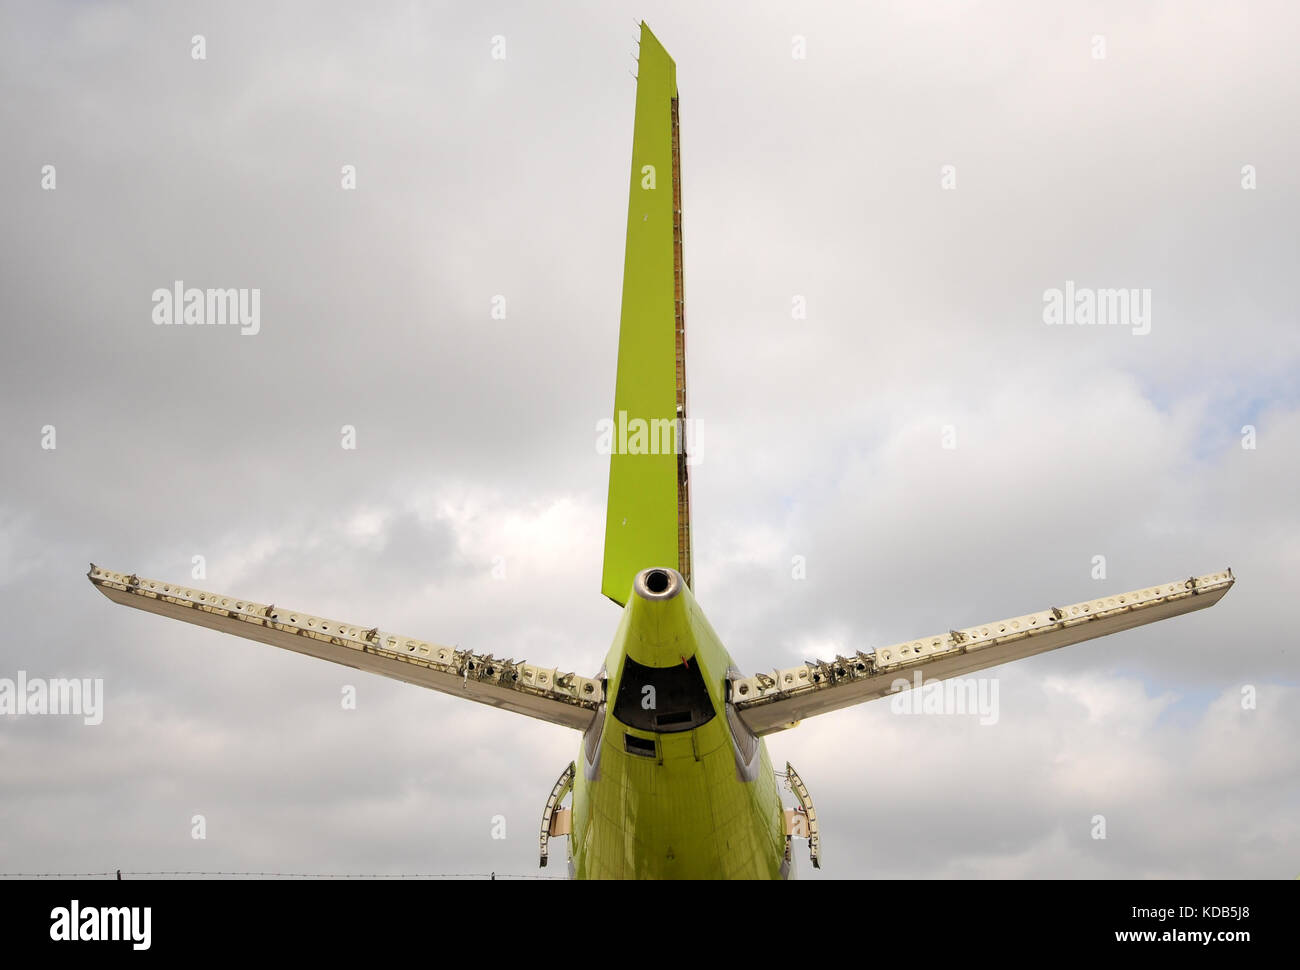 Old Airplane Parts Stock Photos Images Jet Scrapped For Spare Image